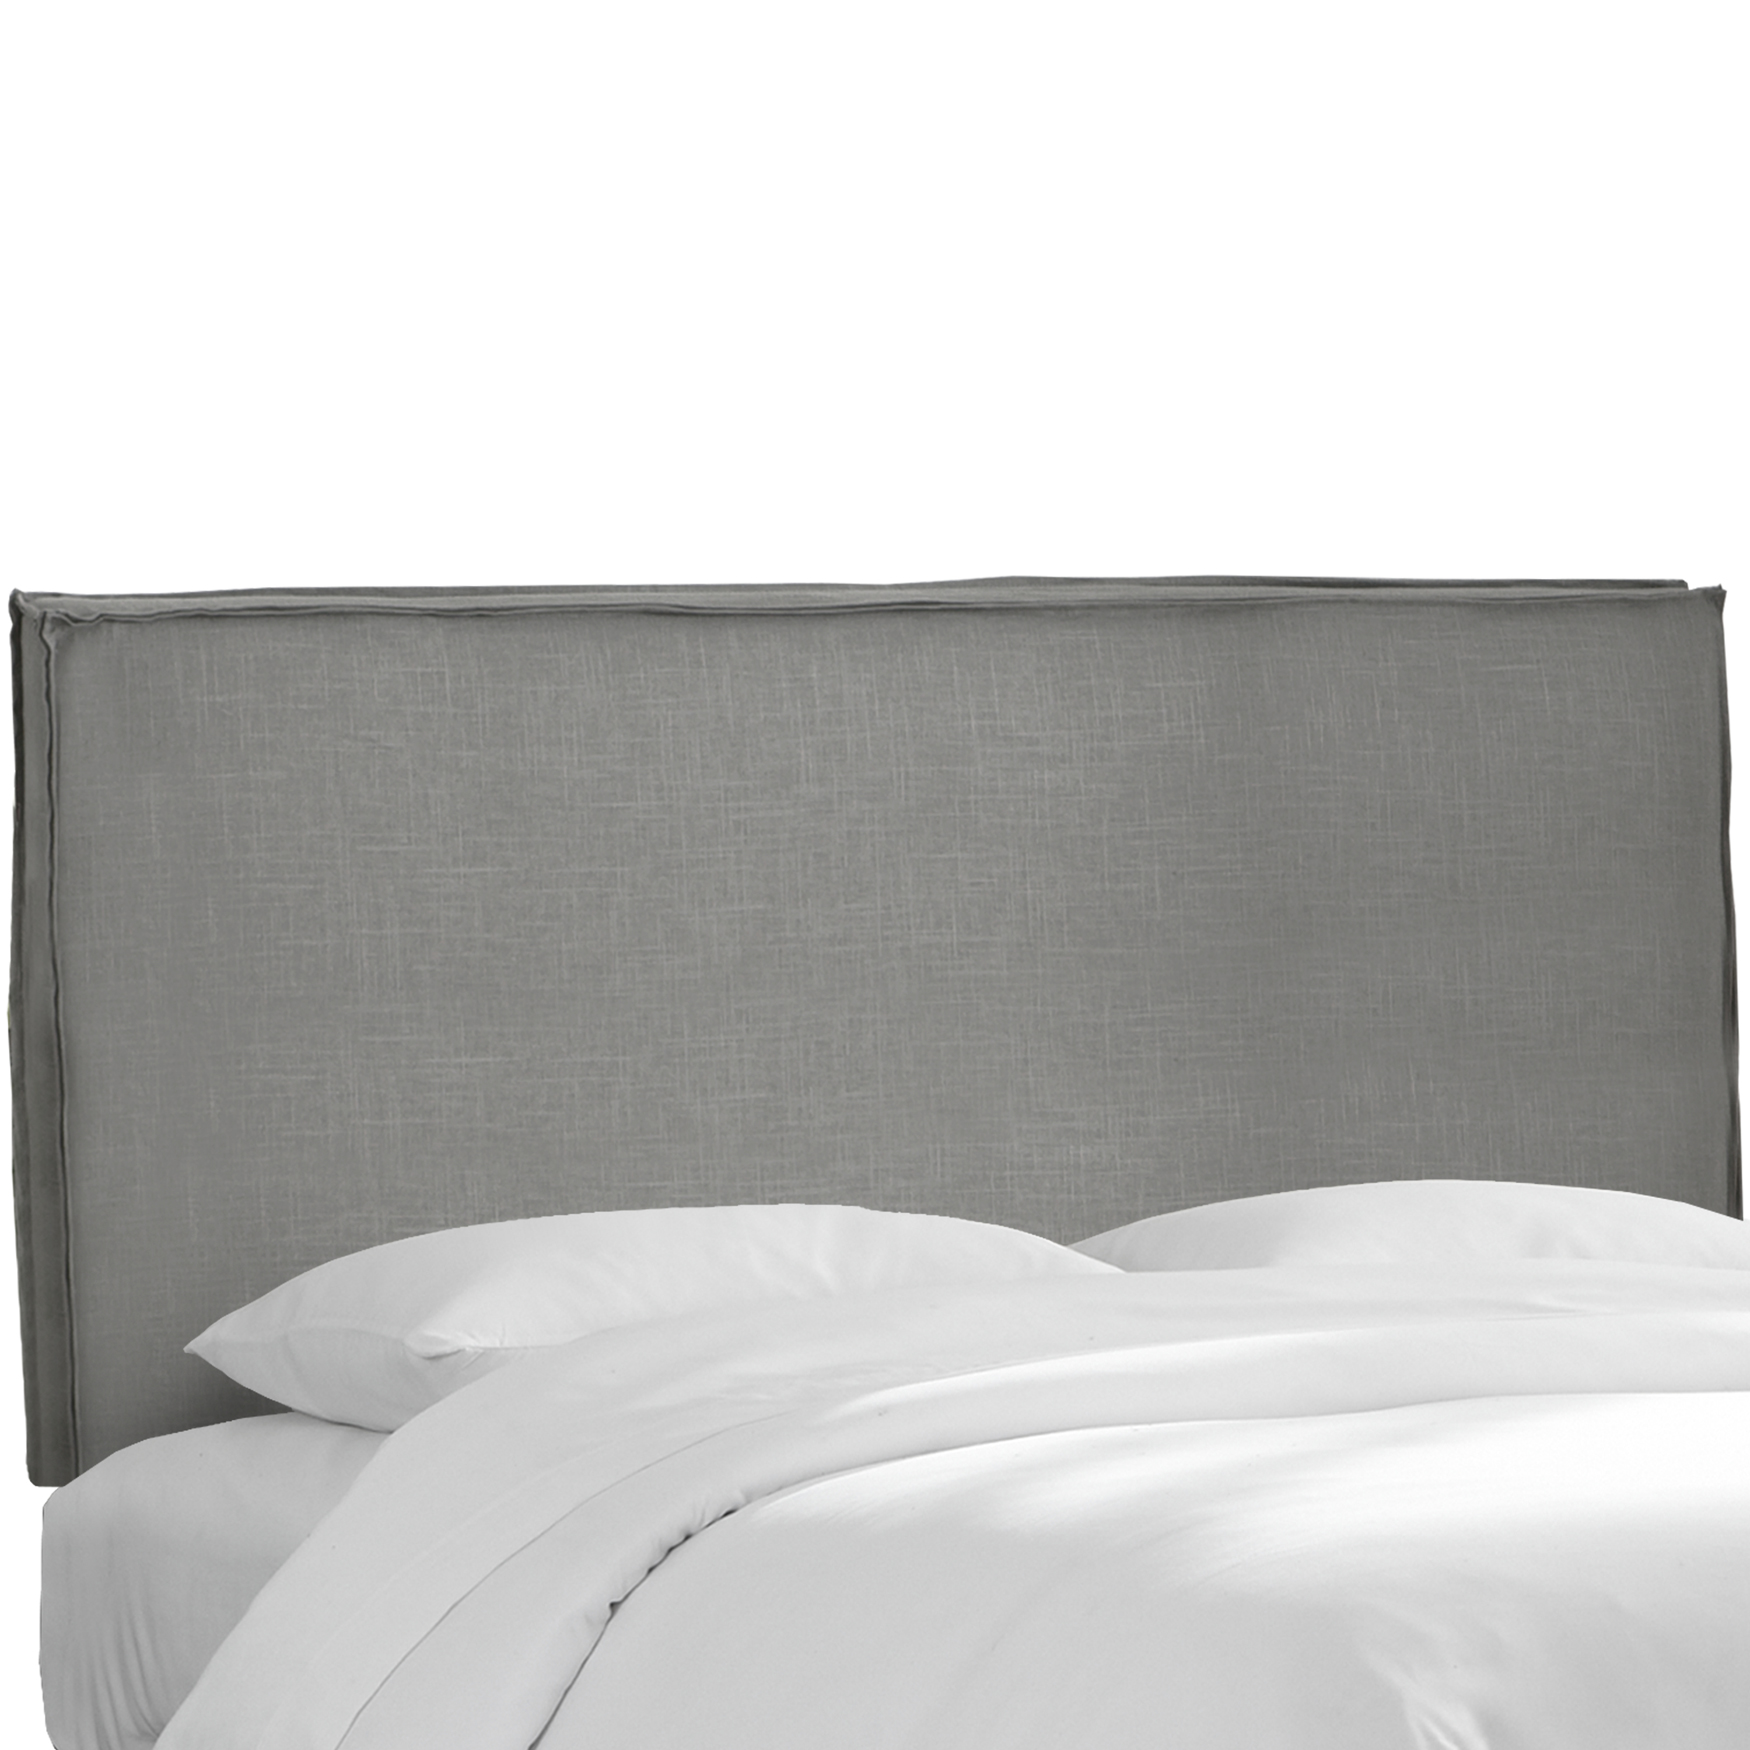 Lorel Slipcover Headboard,